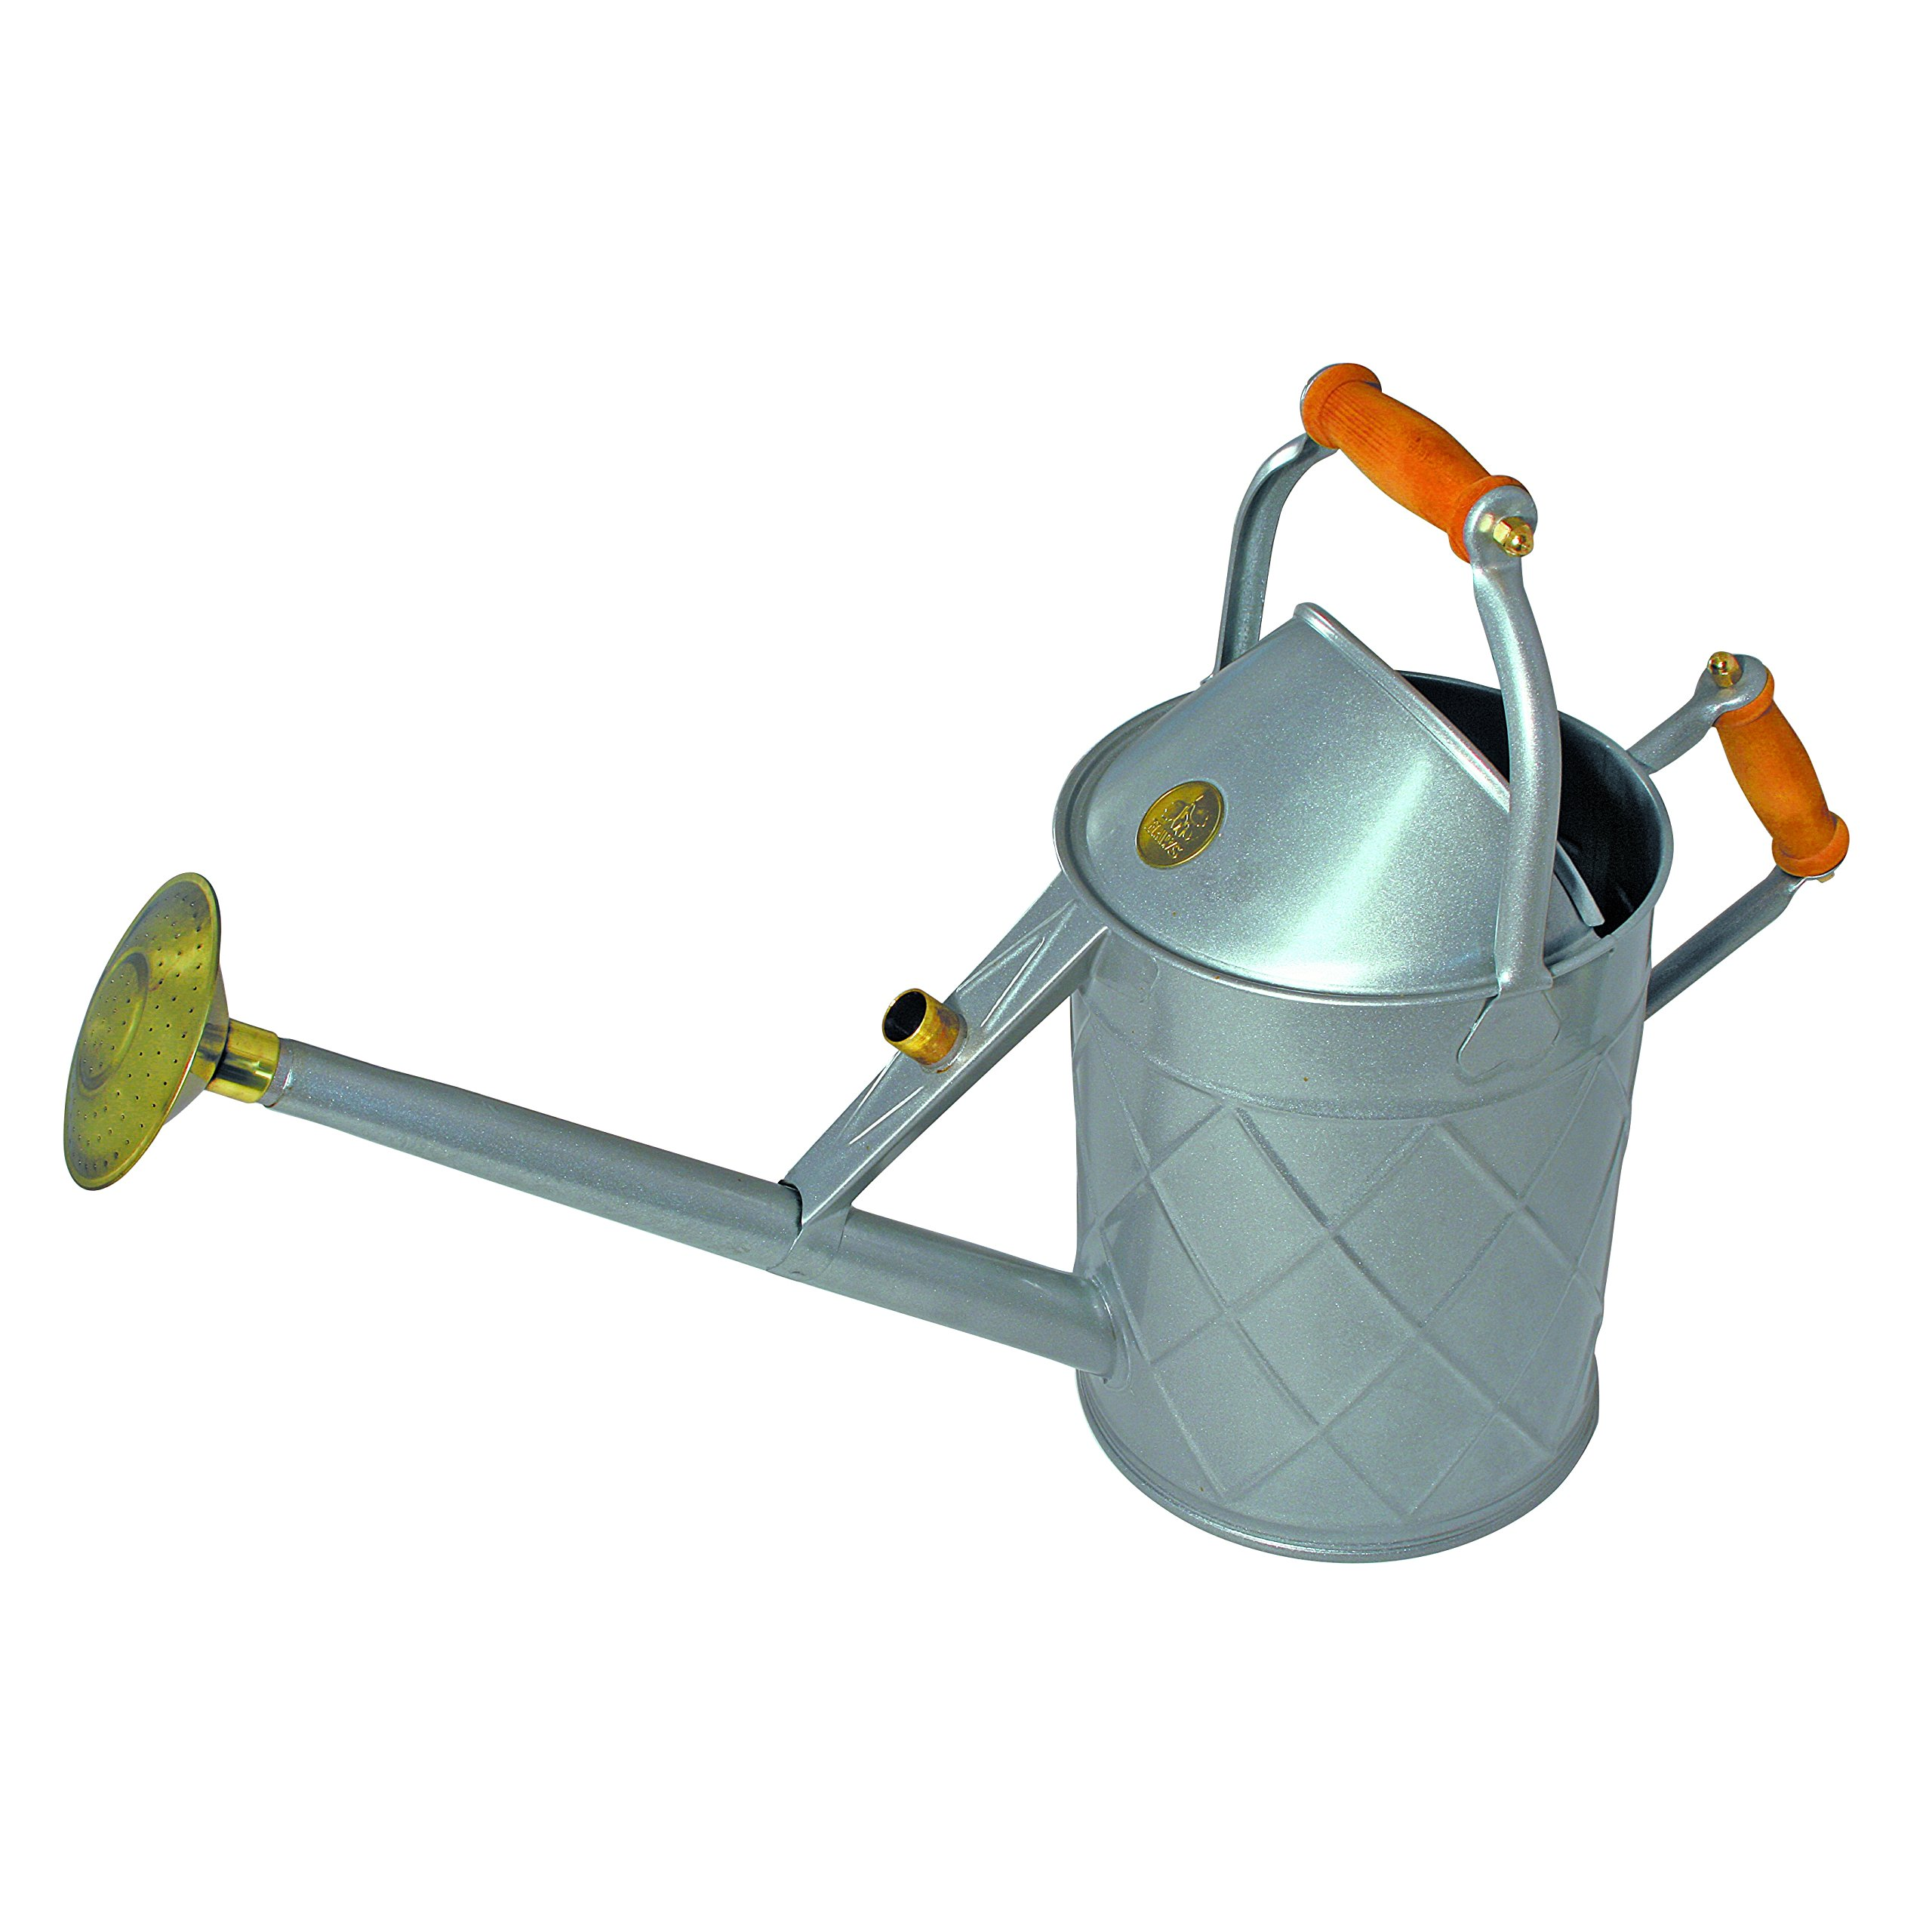 Haws English Garden Heritage 2.3 Gallon Galvanized Metal Watering Can with Wood Handles Grey